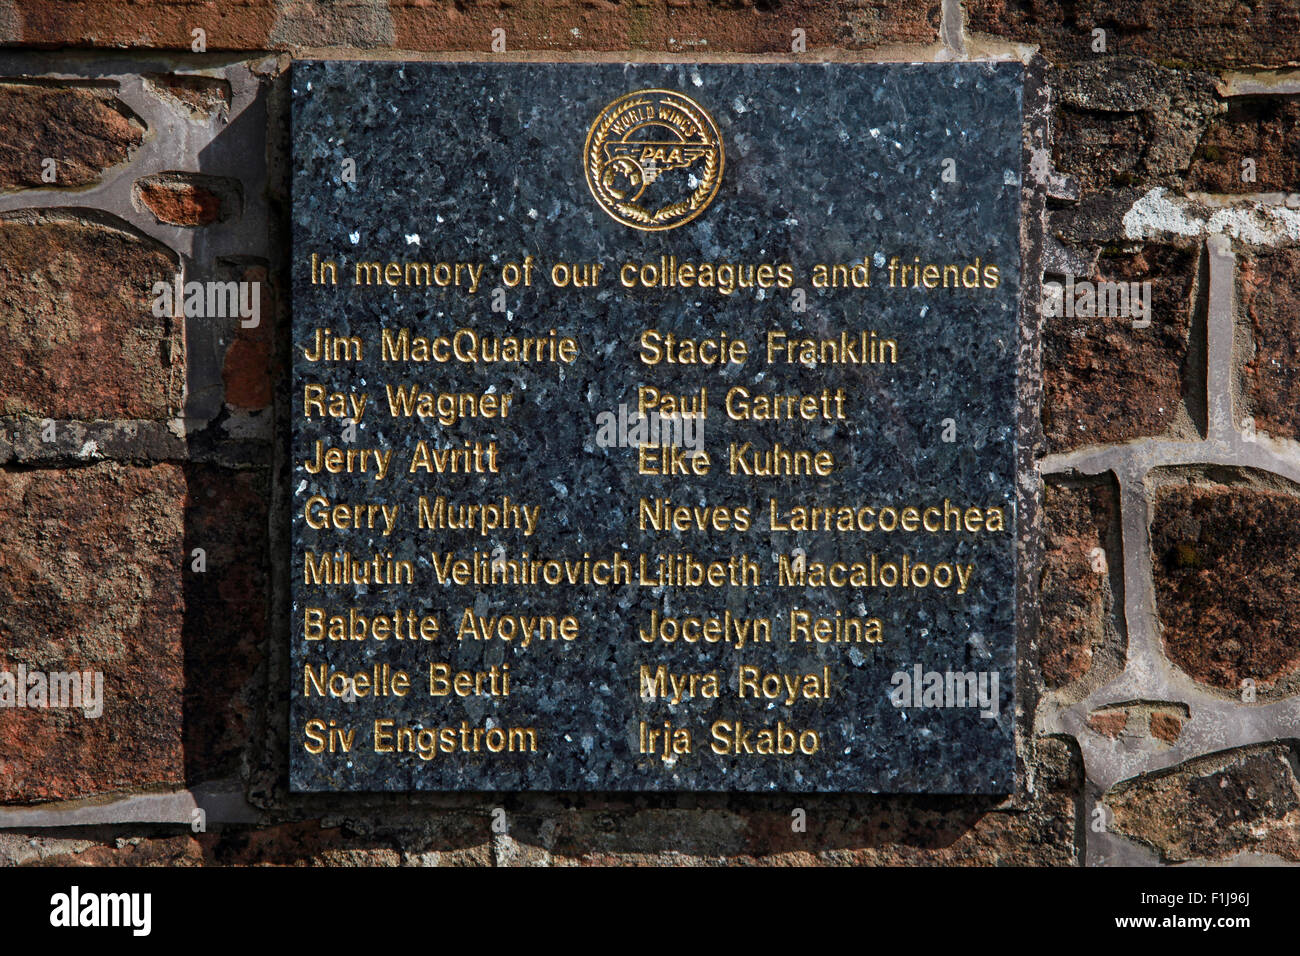 World Wings,Plaque,Scotland,worldwings,Lodge,Visitors,Centre,DLVC,Trust,Lockerbie,Memorial,Remembrance,Scotland,Victims,Pan,Am,PanAm,flight,103,bomb,bombing,terrorist,December,1988,attack,crash,dead,site,21/12/1988,270,victims,Scottish,Town,conspiracy,blast,Tundergarth,Room,garden,of,New York,GoTonySmith,Lodge,Visitors,Centre,DLVC,Trust,Lockerbie,Memorial,Scotland,Victims,Pan,Am,PanAm,flight,103,bomb,bombing,terrorist,December,1988,attack,crash,dead,site,21/12/1988,270,victims,Scottish,Town,conspiracy,blast,Tundergarth,Room,garden,of,Dryfesdale,Cemetery,news,Cultural,understanding,remembering,innocent,transatlantic,Frankfurt,Detroit,Libyan,Libya,Colonel Muammar Gaddafi,civil,case,compensation,terrorism,PA103,30,30years,years,Syracuse,University,SU,family,collections,Story,Archive,Archives,40,35,Timeline,saga,disaster,air,Scholars,program,programs,remembrance,Clipper Maid of the Seas,N739PA,Boeing,727,plane,aircraft,Scotland,UK,United Kingdom,GB,Great Britain,resting,place,Buy Pictures of,Buy Images Of,New York,al megrahi,30 Years